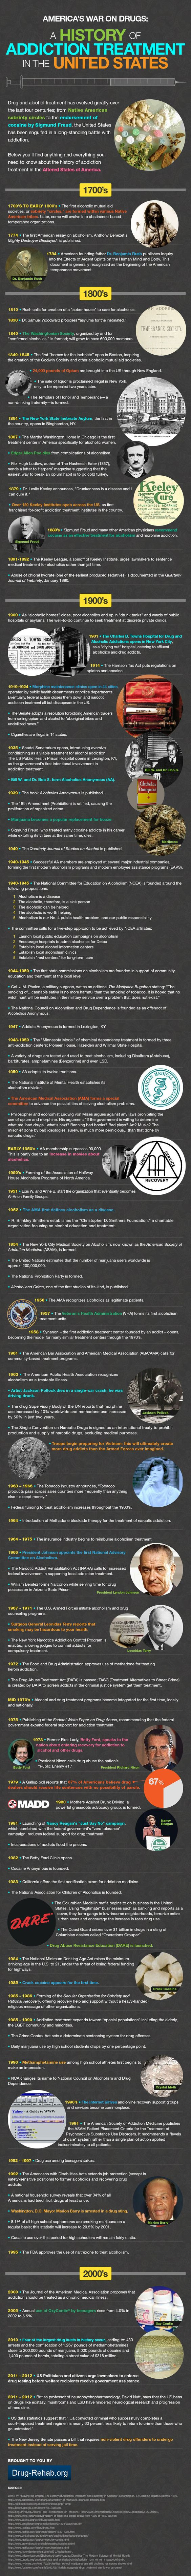 America's Fight Against Addiction | Drug Treatment Timeline | drug rehab www.lakeviewhealth.com